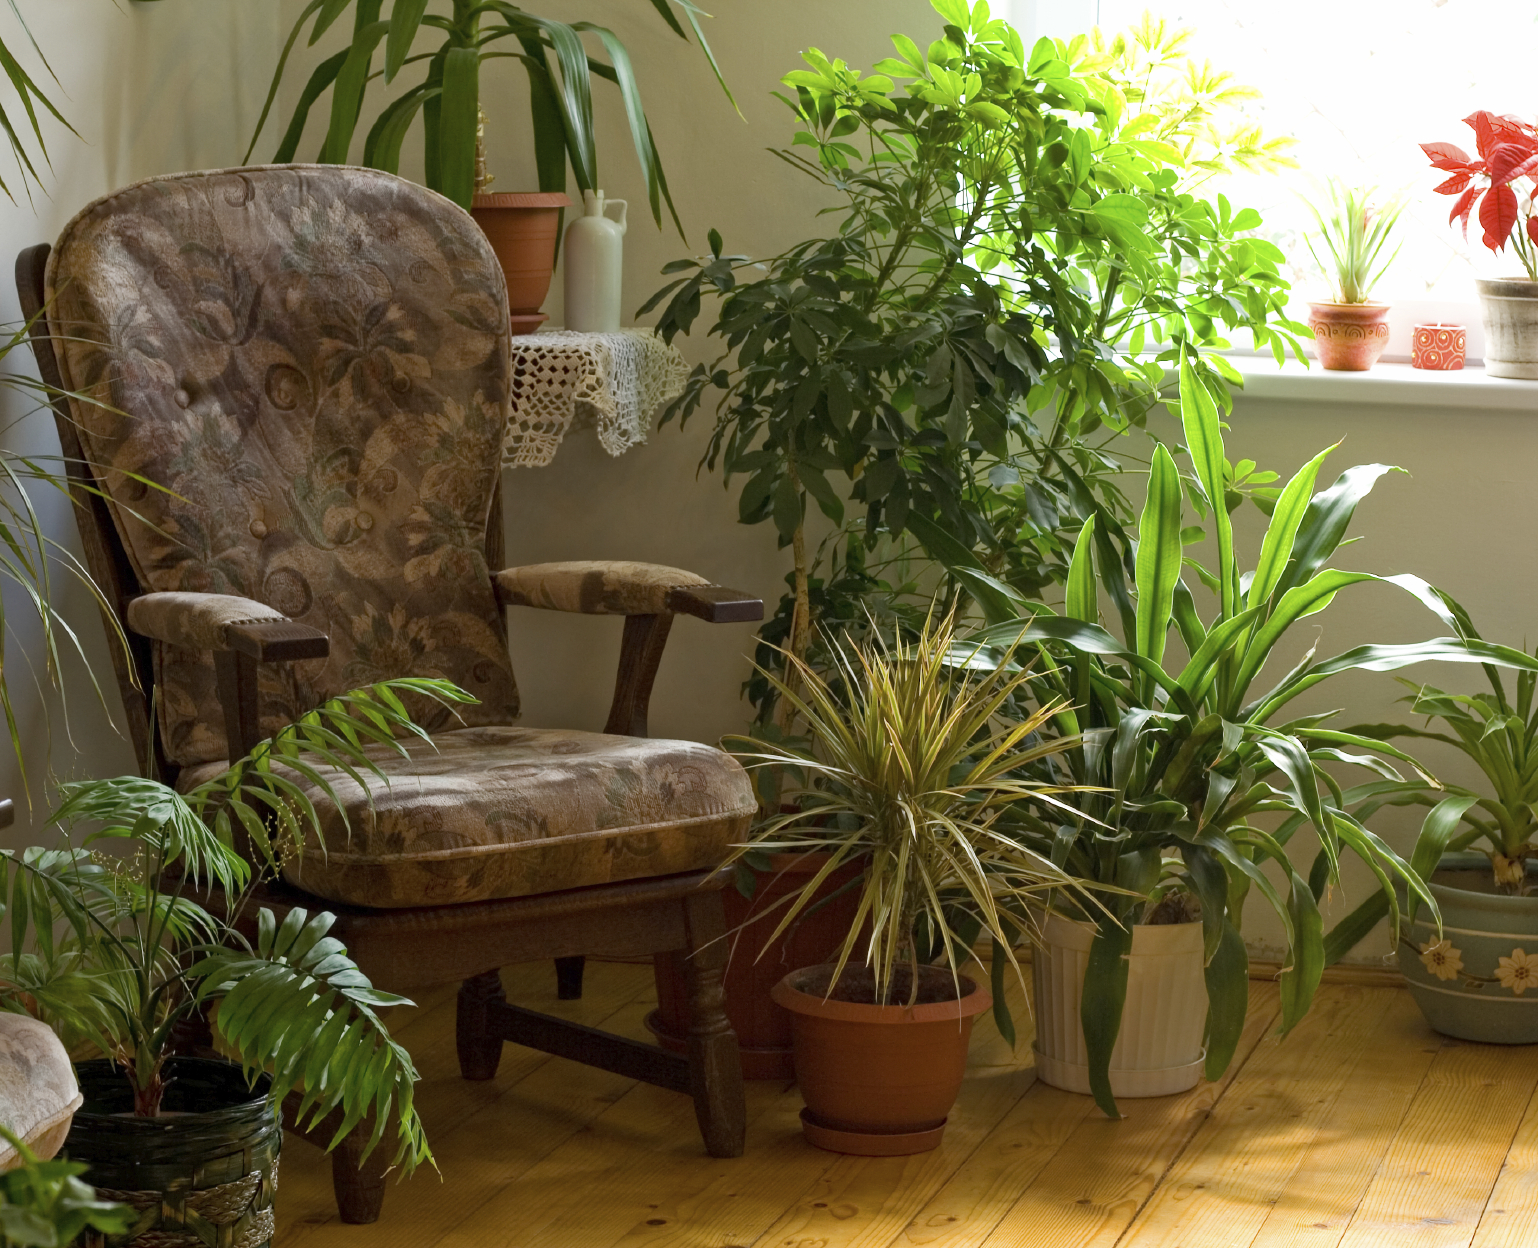 houseplants to purify indoor home air